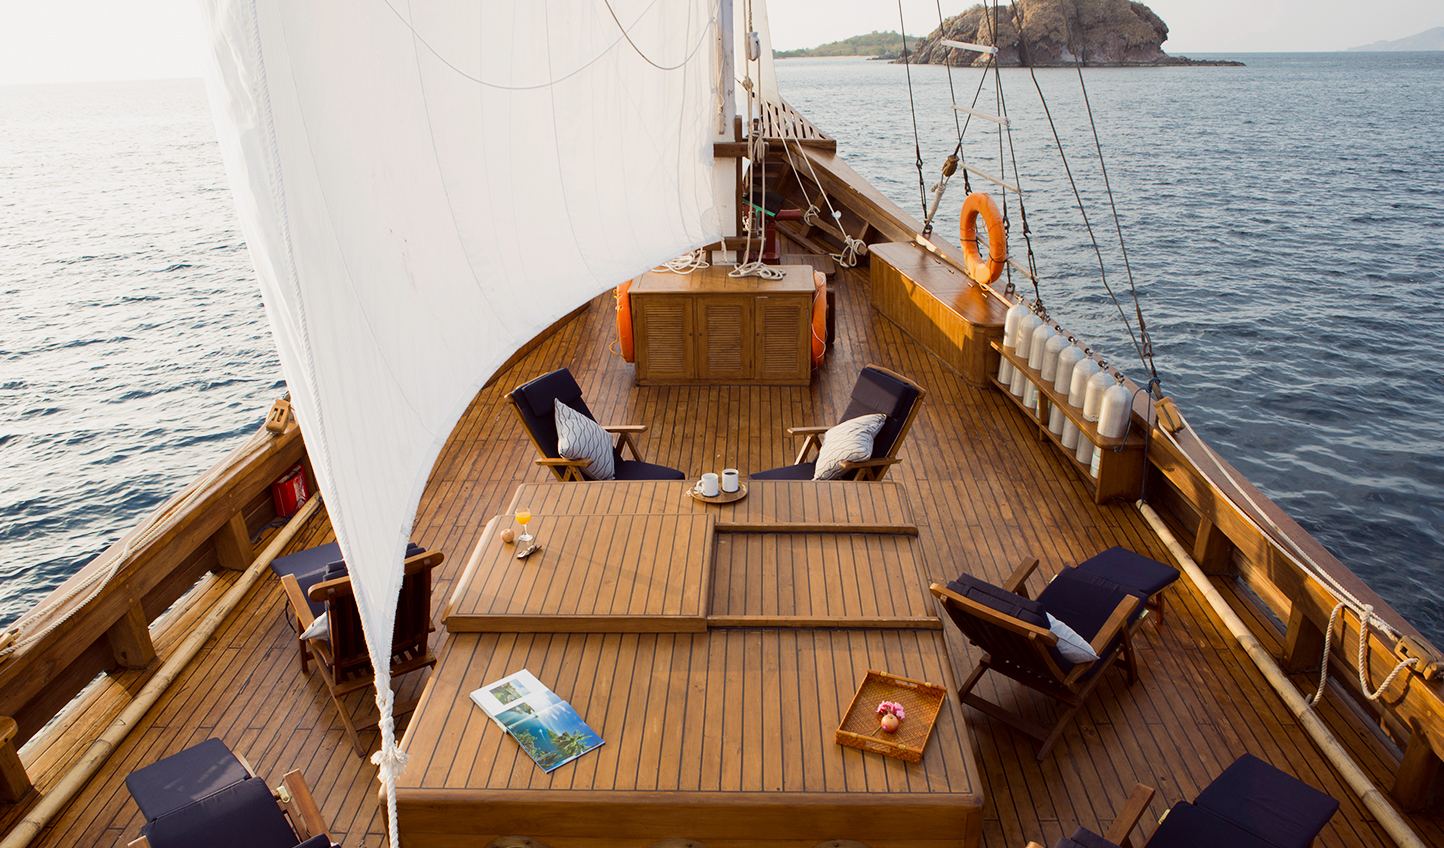 Pristine 75 feet wooden yacht with graceful lines reminiscent of a traditional Phinisi schooner.